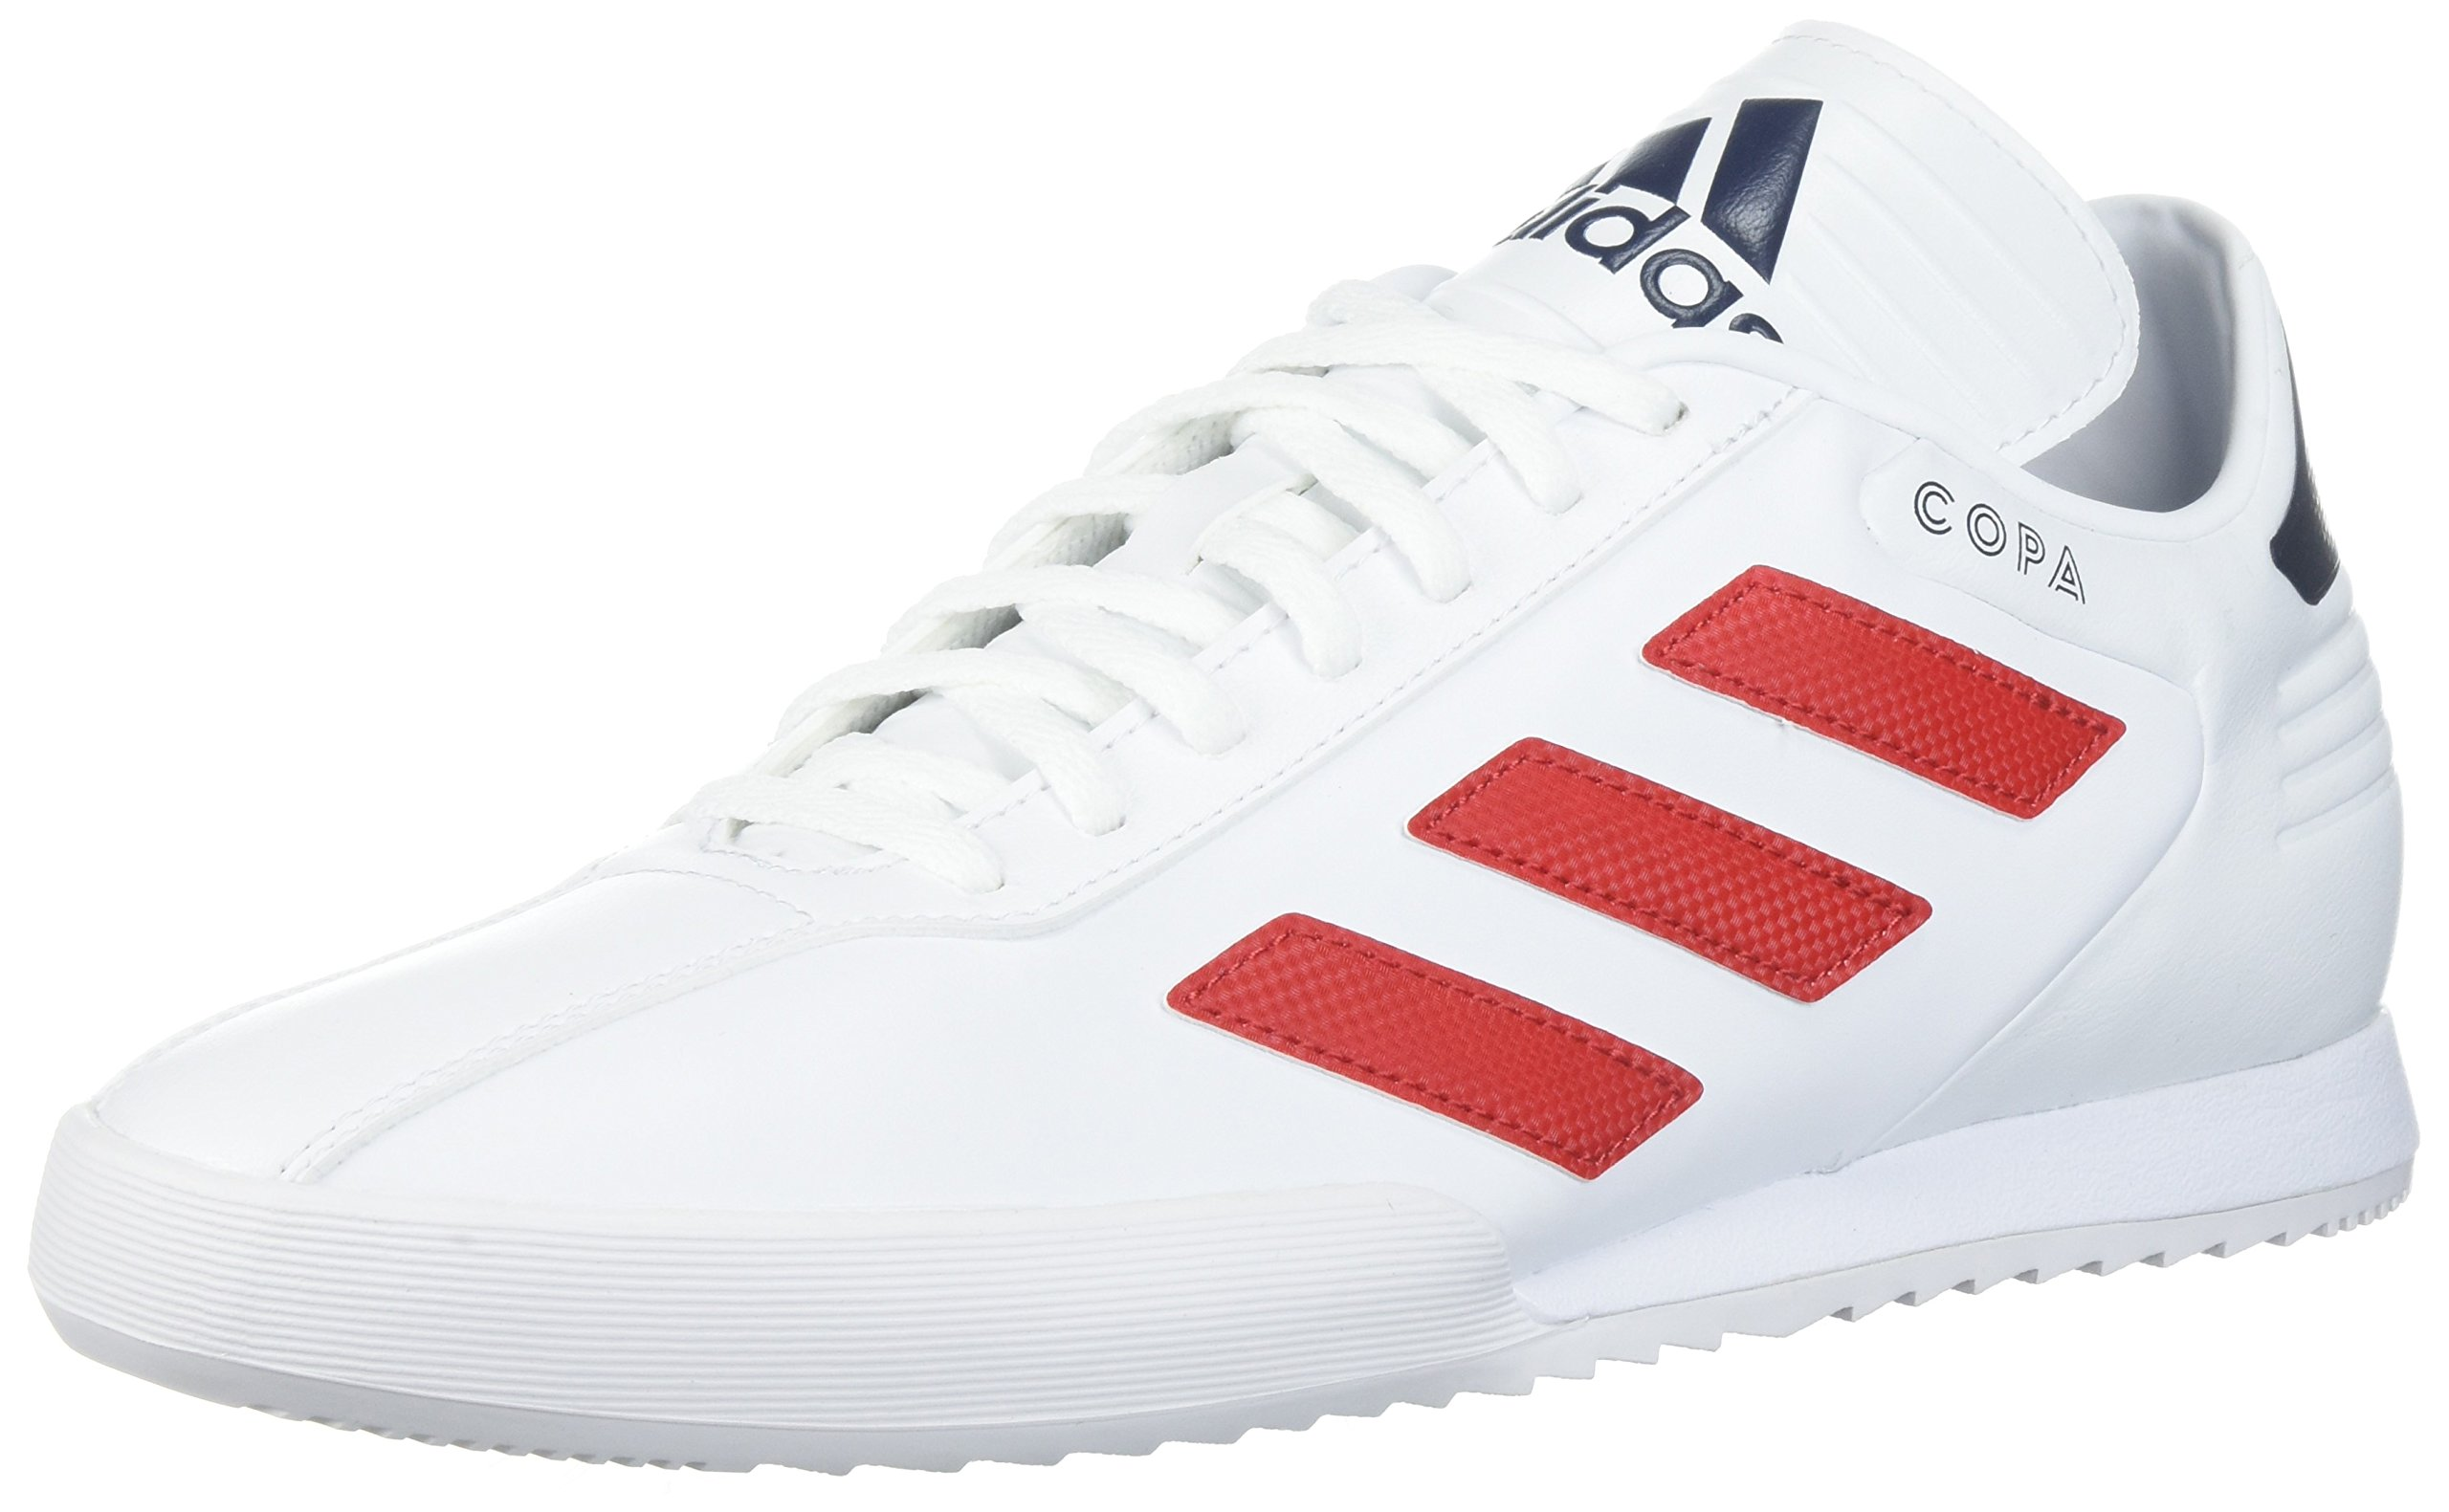 separation shoes 5a29a f9e9d Galleon - Adidas Mens Copa Super Soccer Shoe, WhiteScarletCollegiate Navy,  12.5 M US